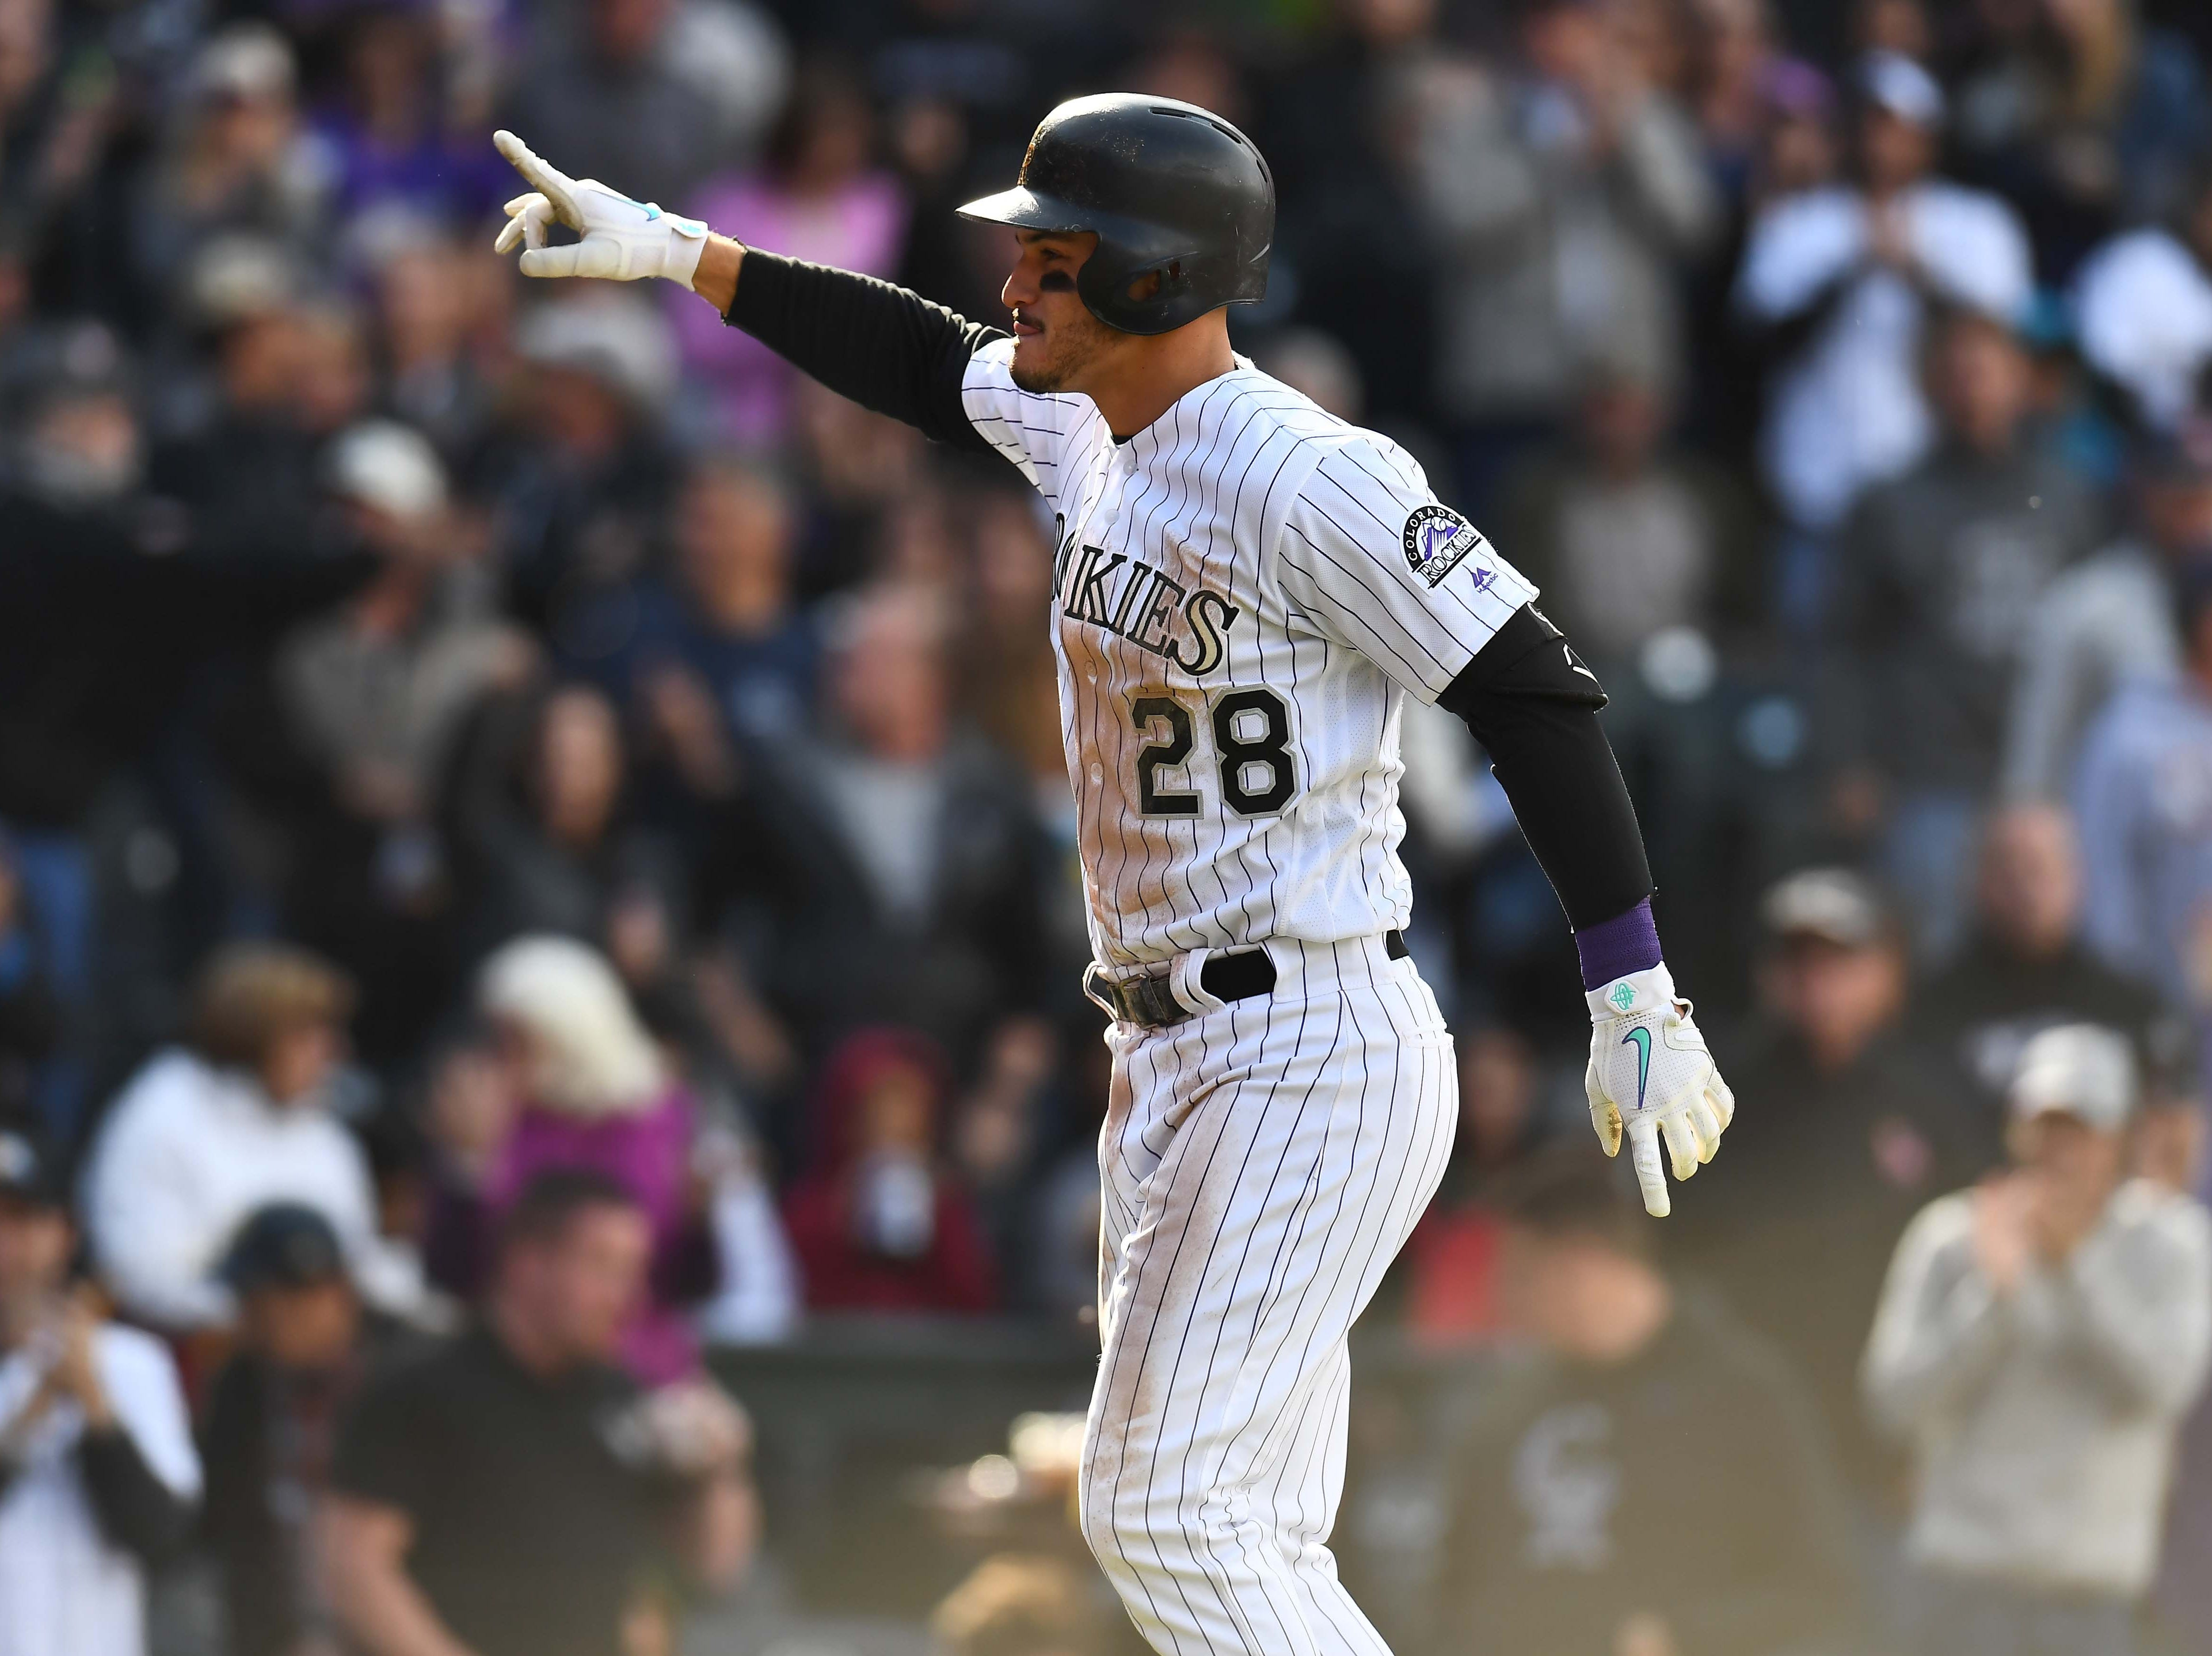 6. Nolan Arenado, Colorado Rockies third baseman.